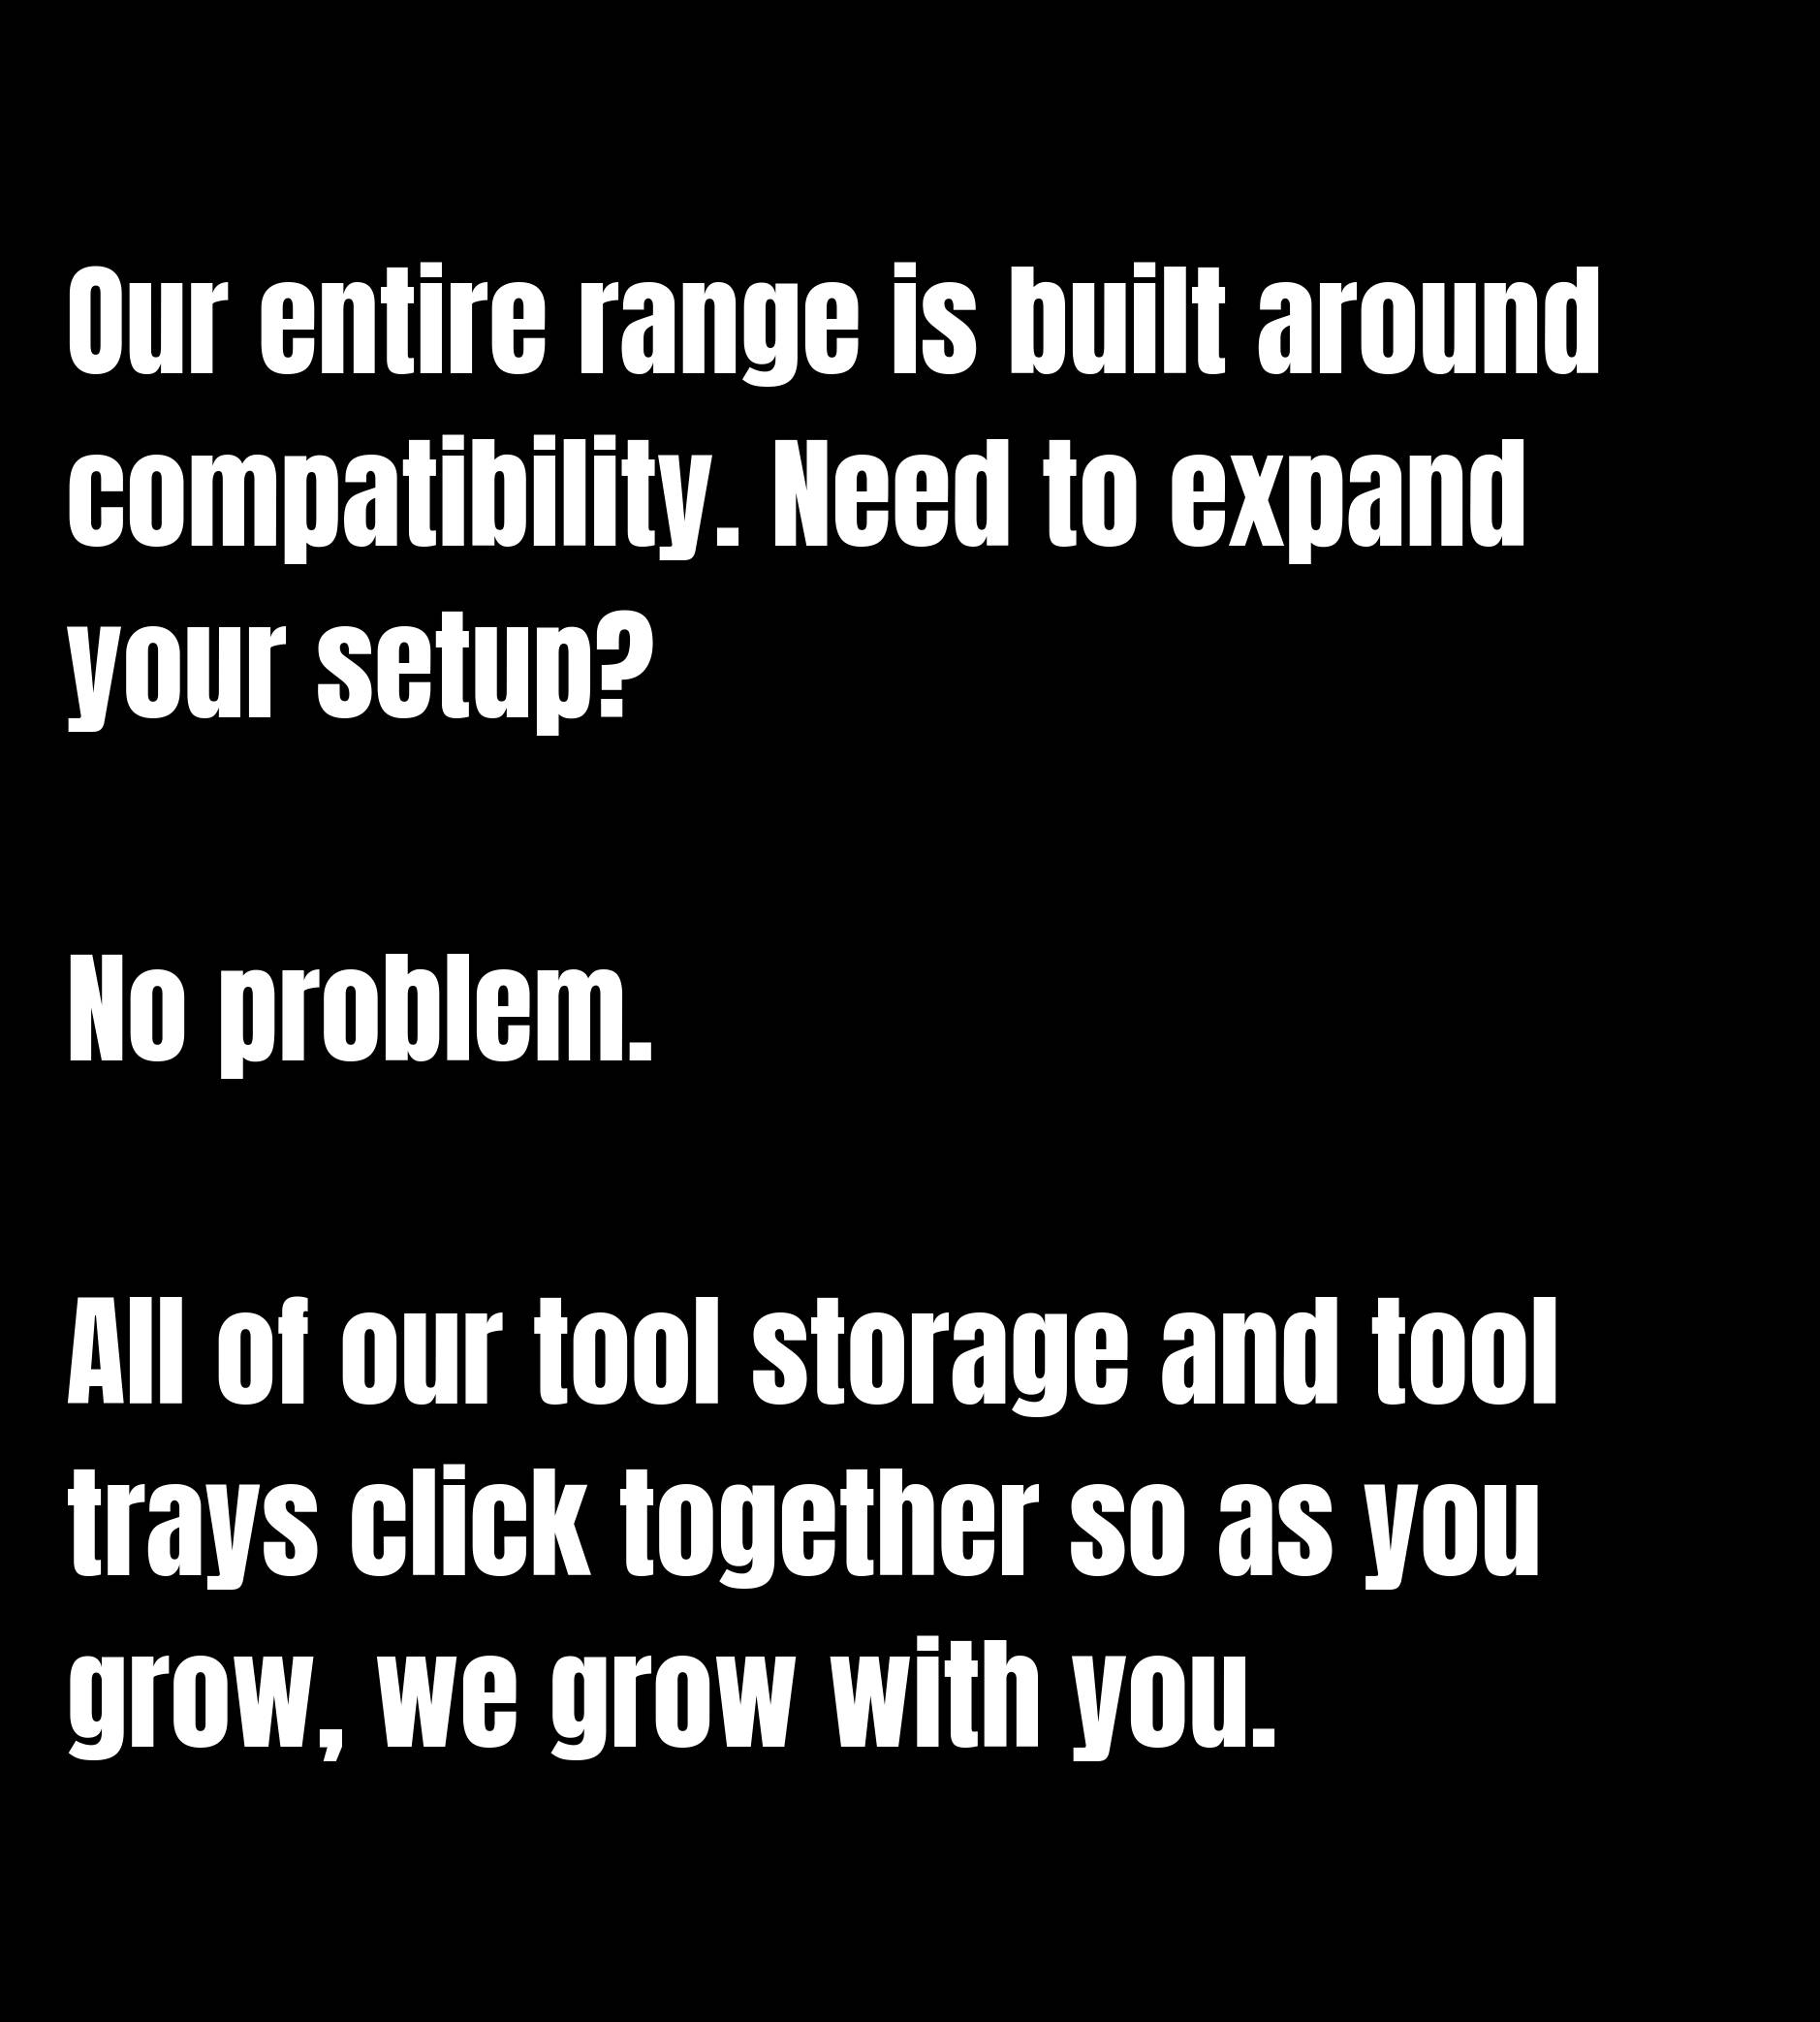 Our entire range is built around compatibility. Need to expand your setup? No problem. All of our tool storage and tool trays click together so as you grow, we grow with you.